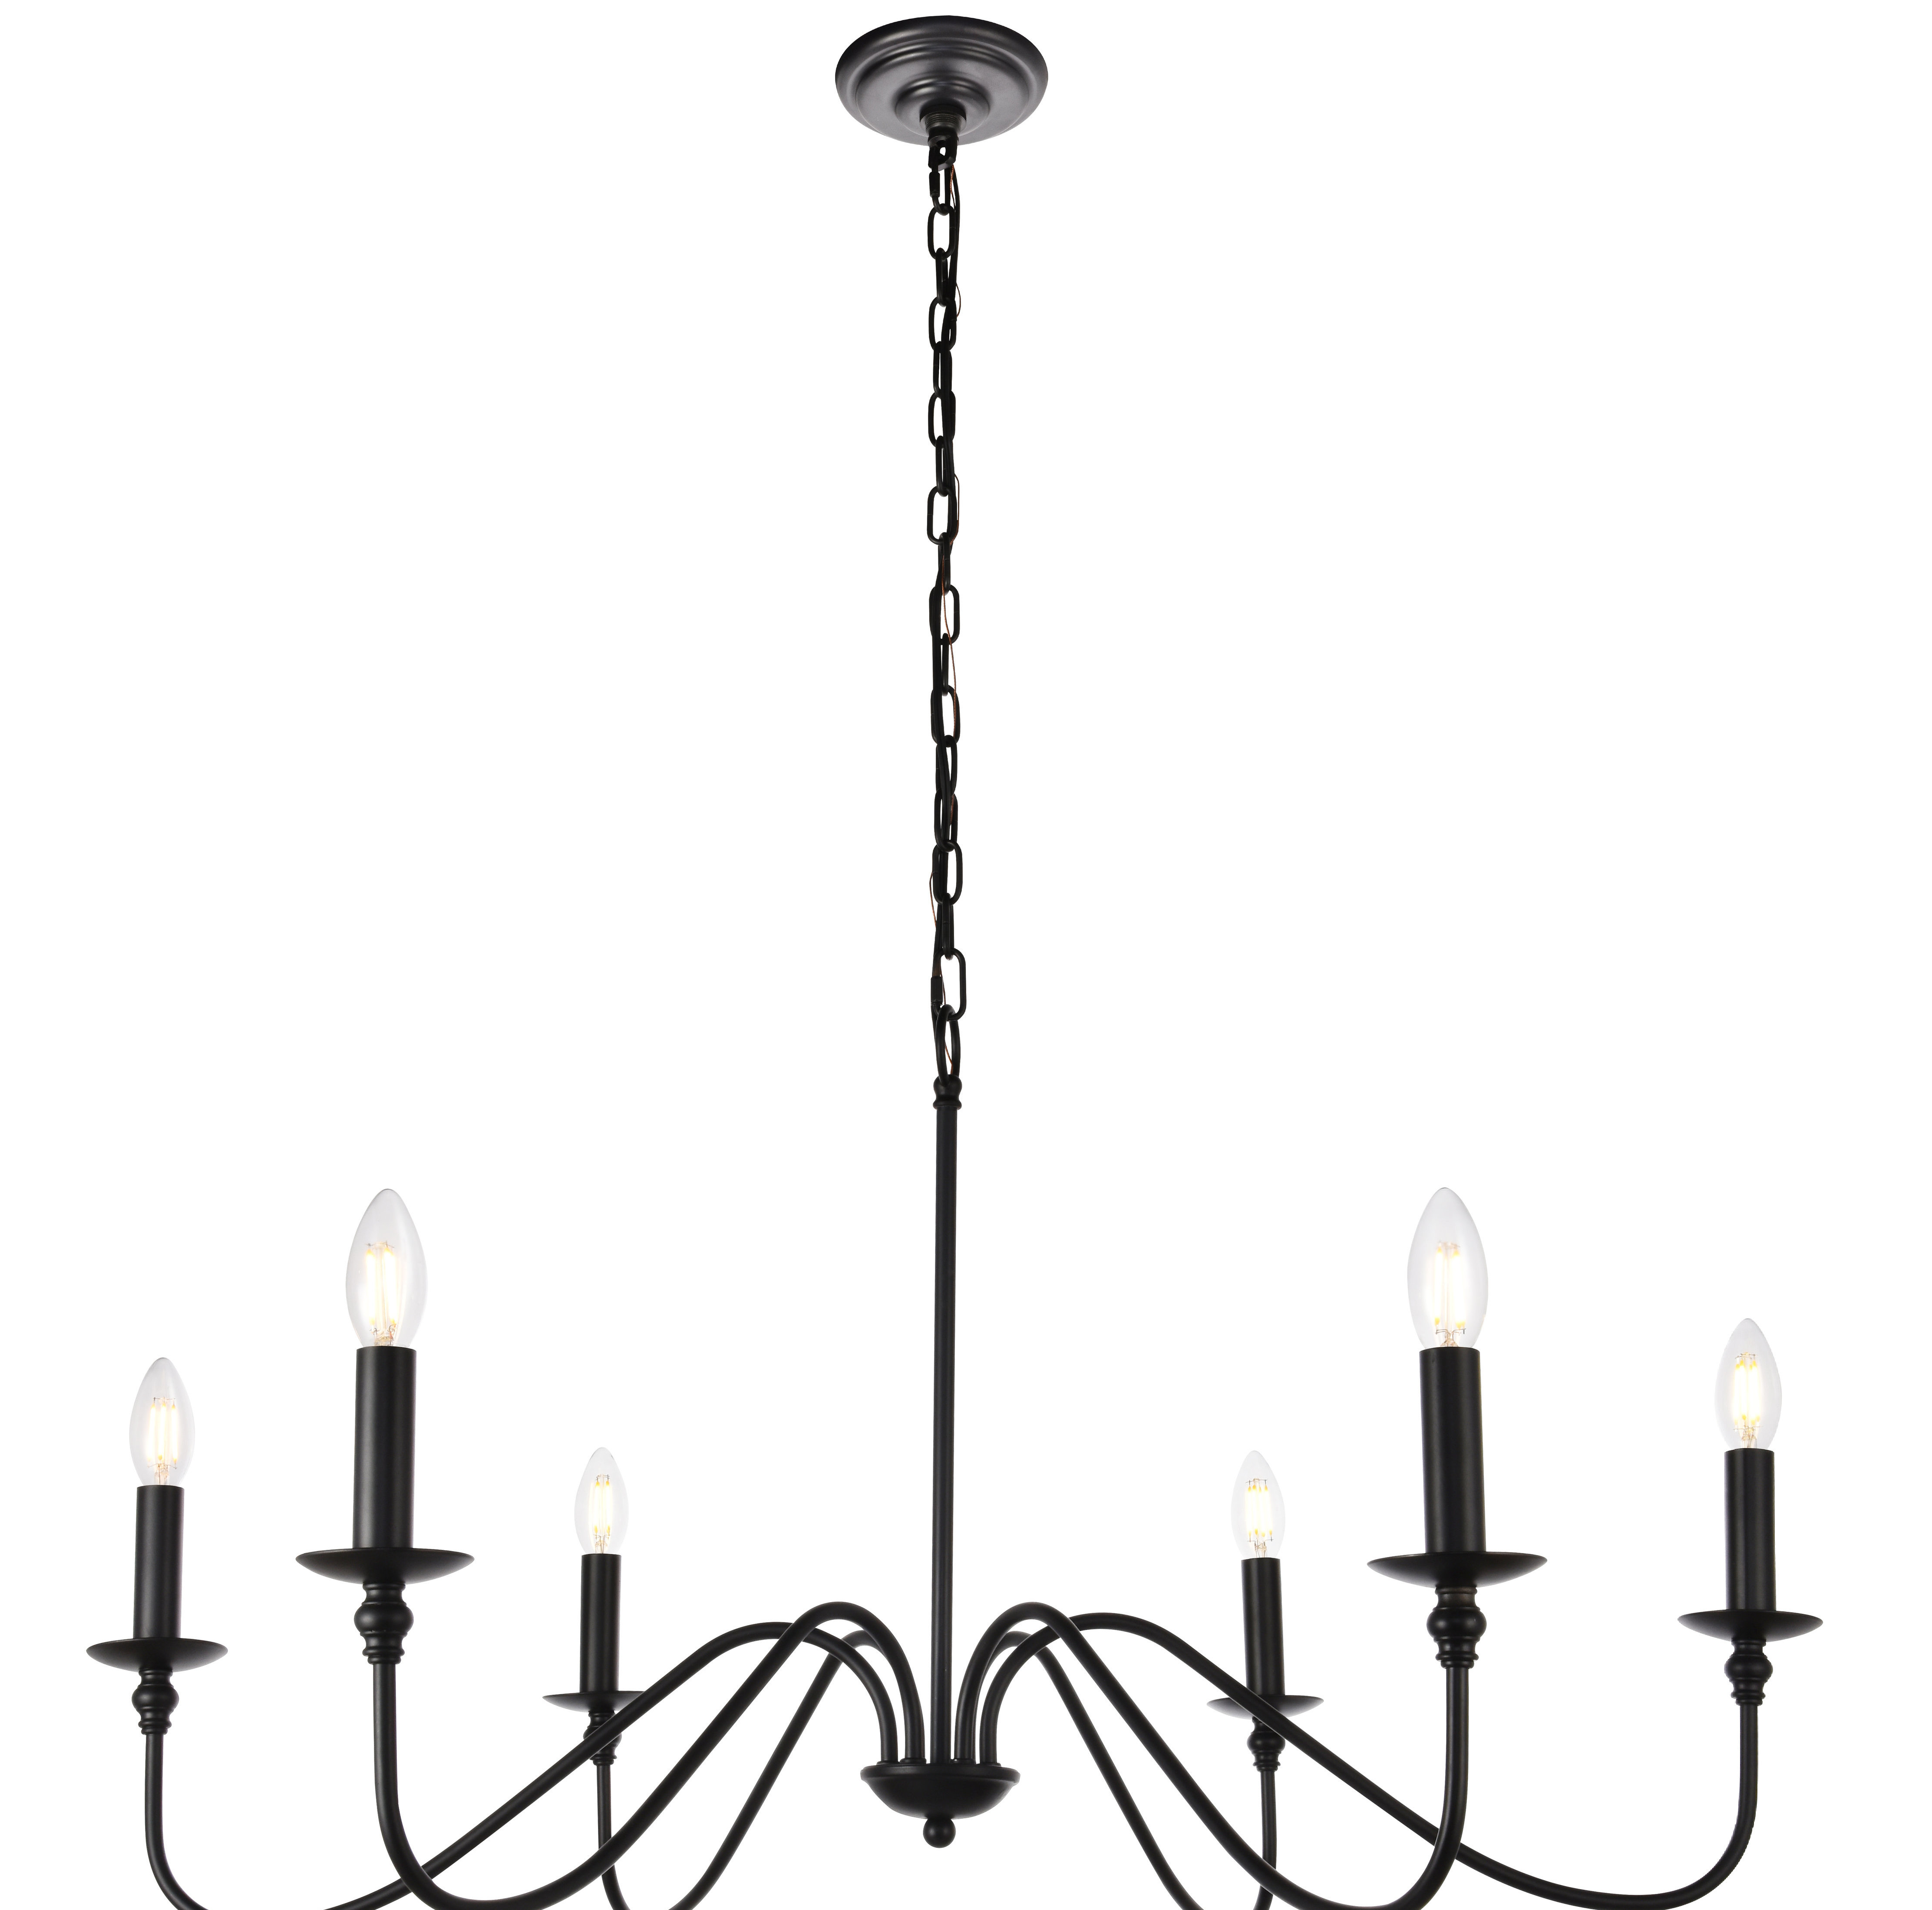 Popular Hamza 6 Light Candle Style Chandeliers Regarding Hamza 6 Light Candle Style Chandelier (View 2 of 25)